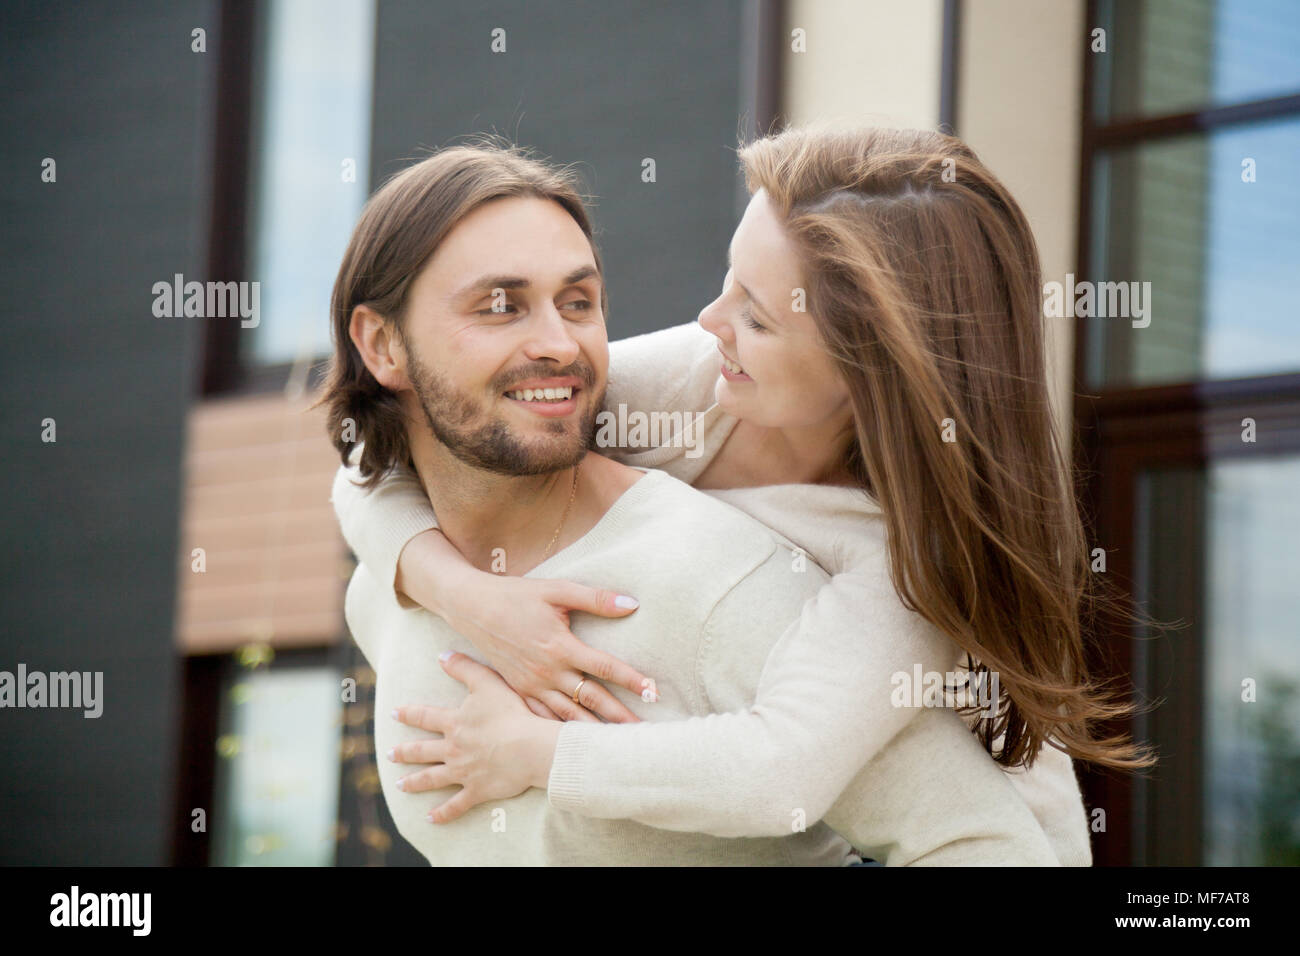 Loving young happy couple embracing outdoor, smiling husband pig - Stock Image